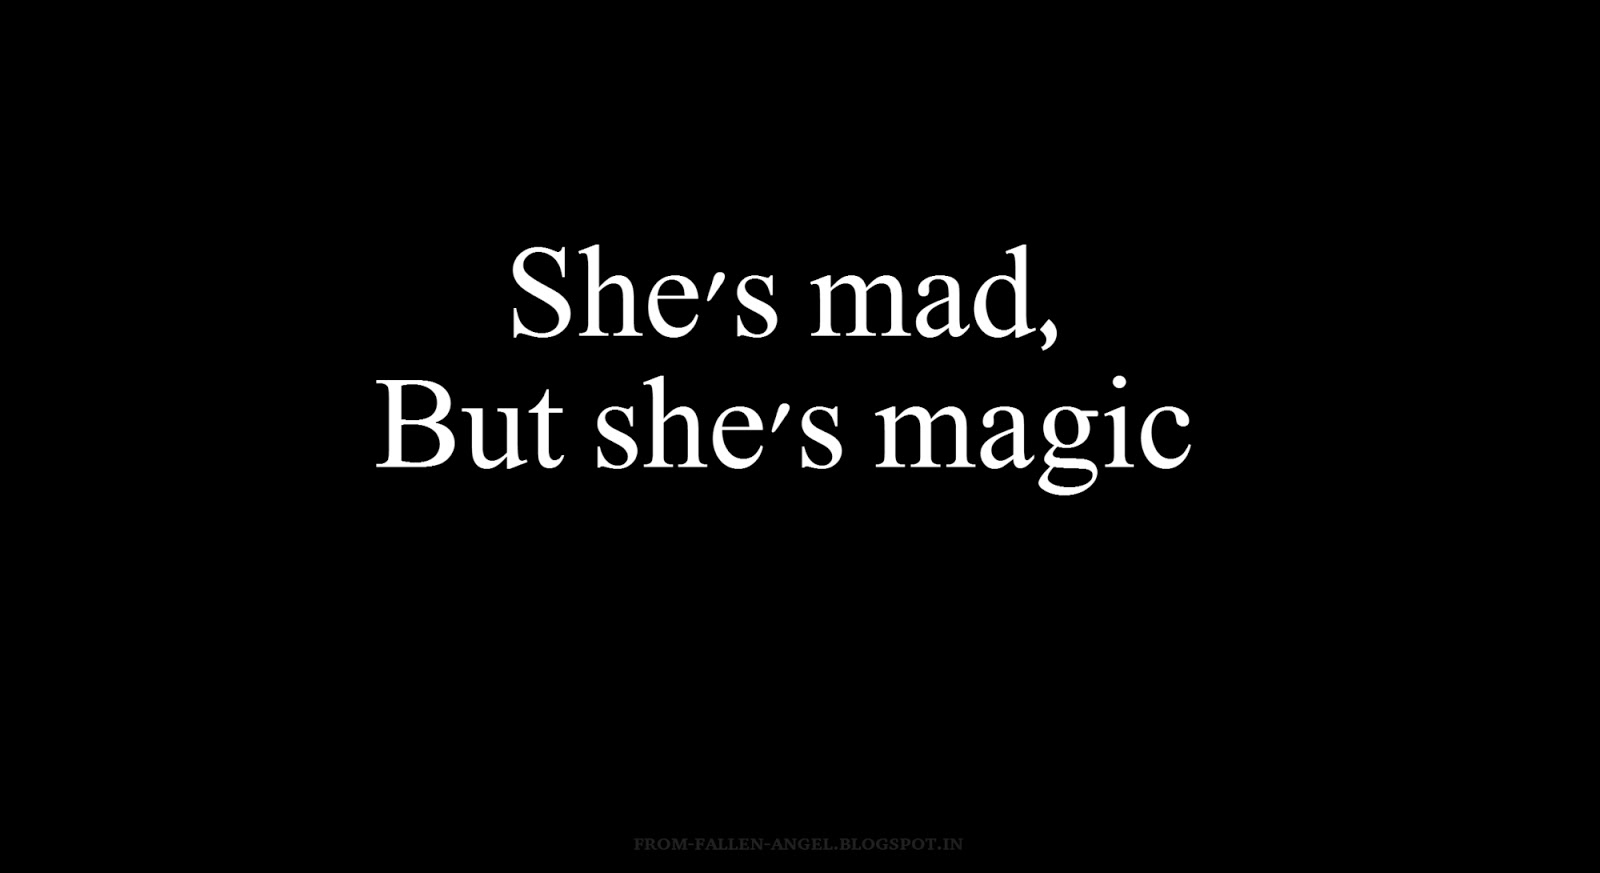 She's mad, But she's magic